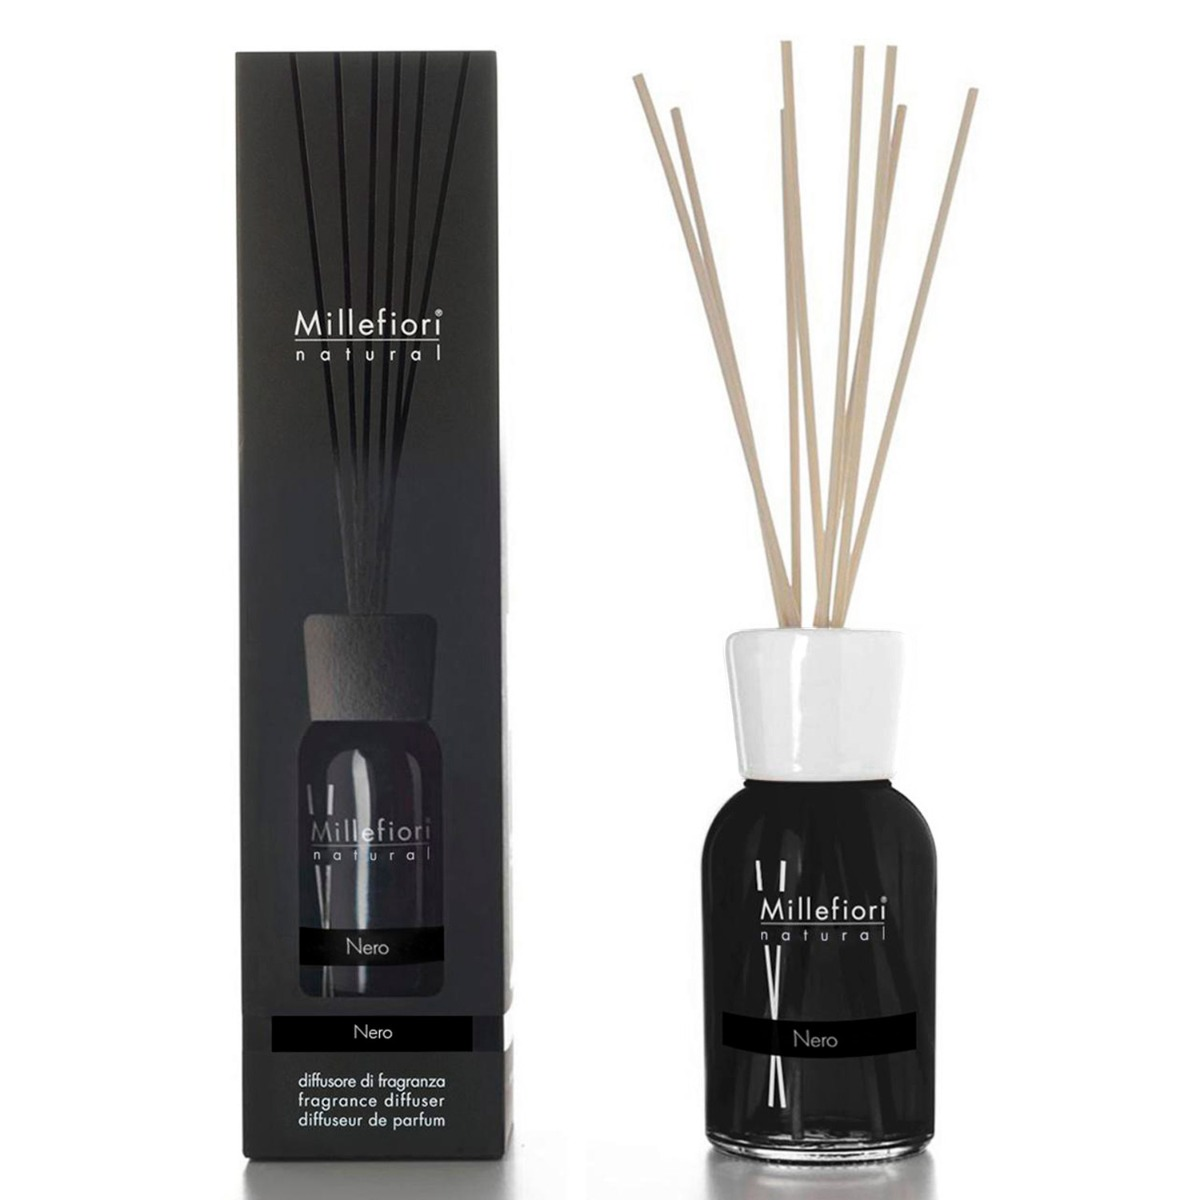 Millefiori Natural Nero 250ml Fragrance Diffuser Temptation Gifts